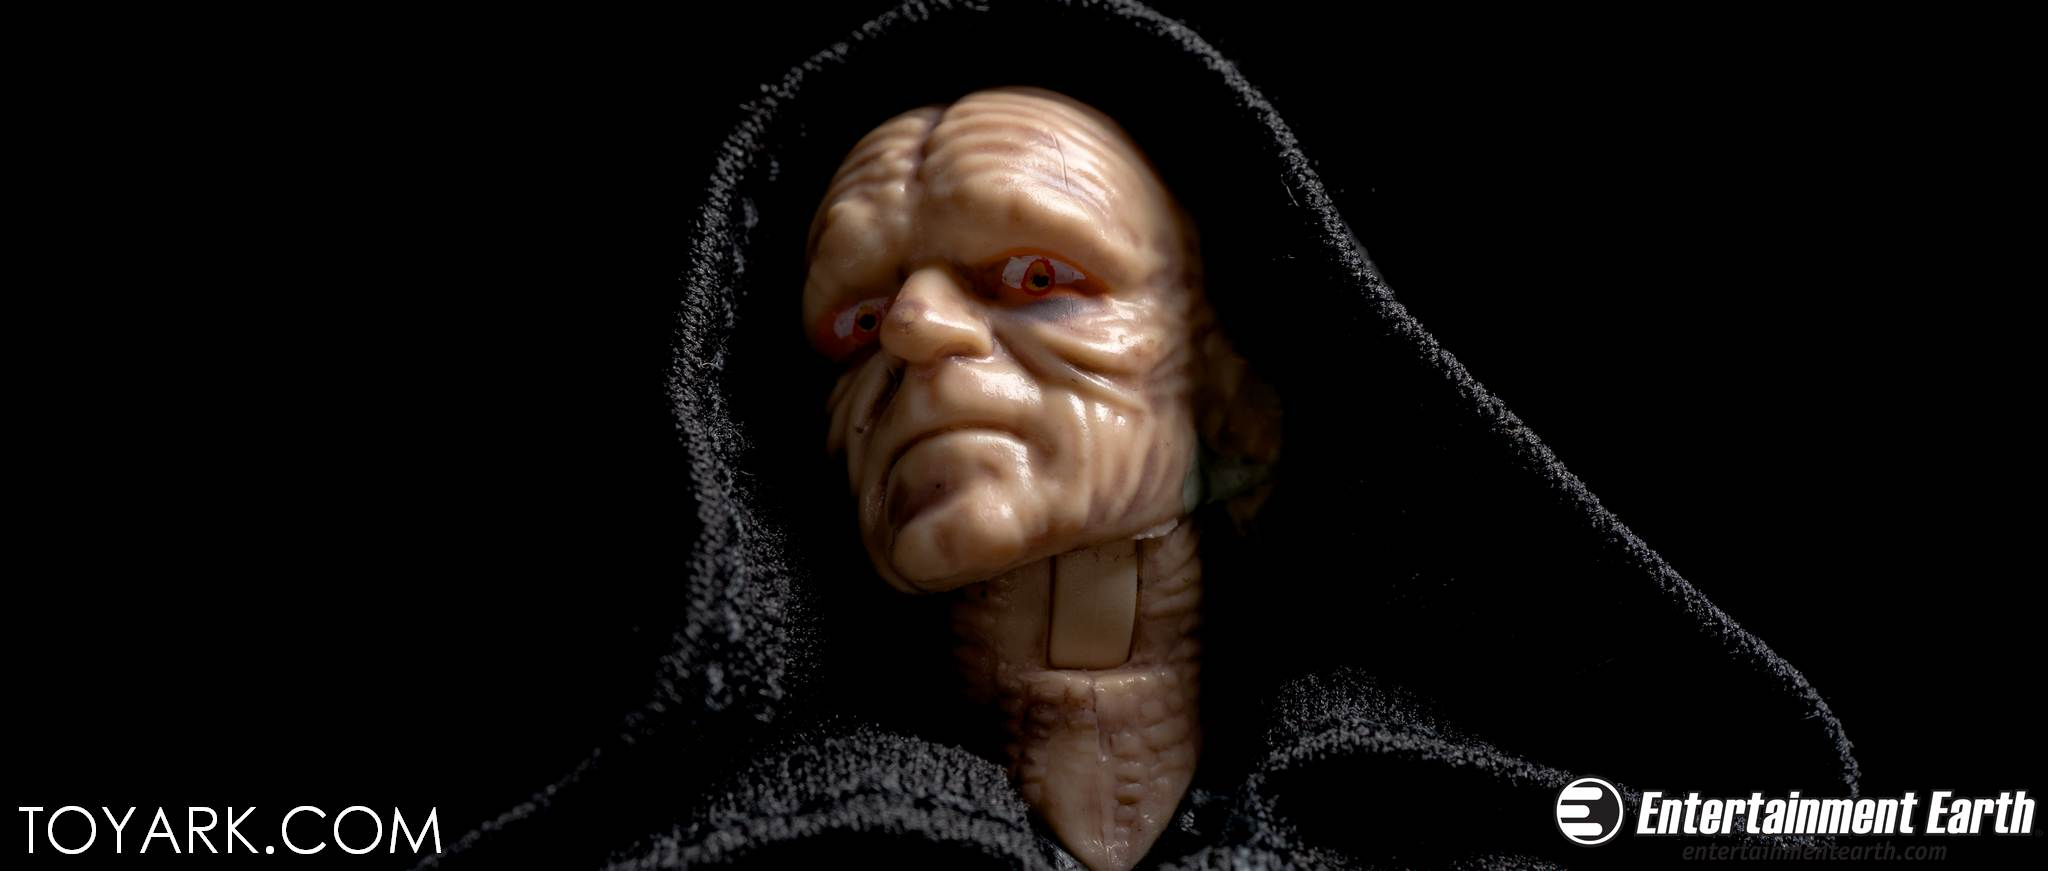 Black Series Emperor Palpatine Gallery - The Toyark - News